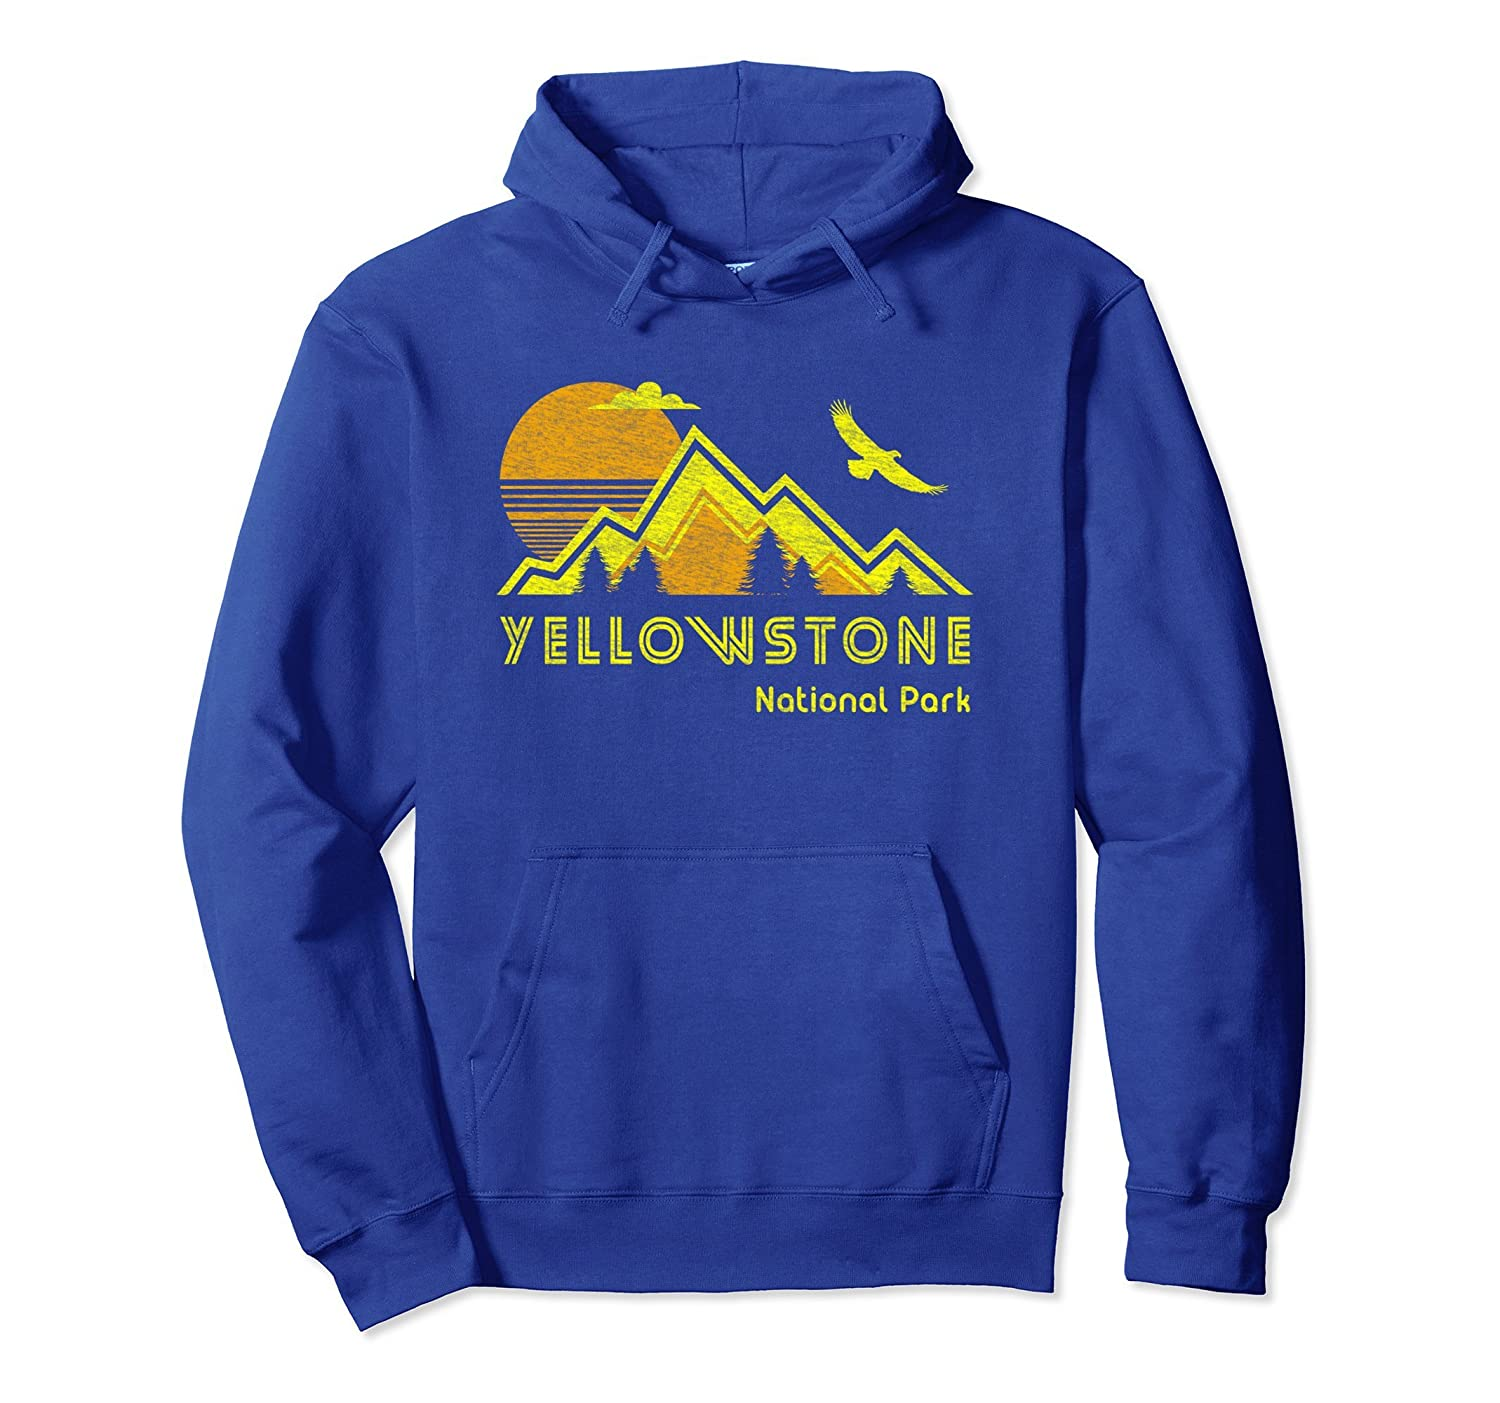 Yellowstone National Park Hoodie Retro Pullover Sweatshirt-ah my shirt one gift